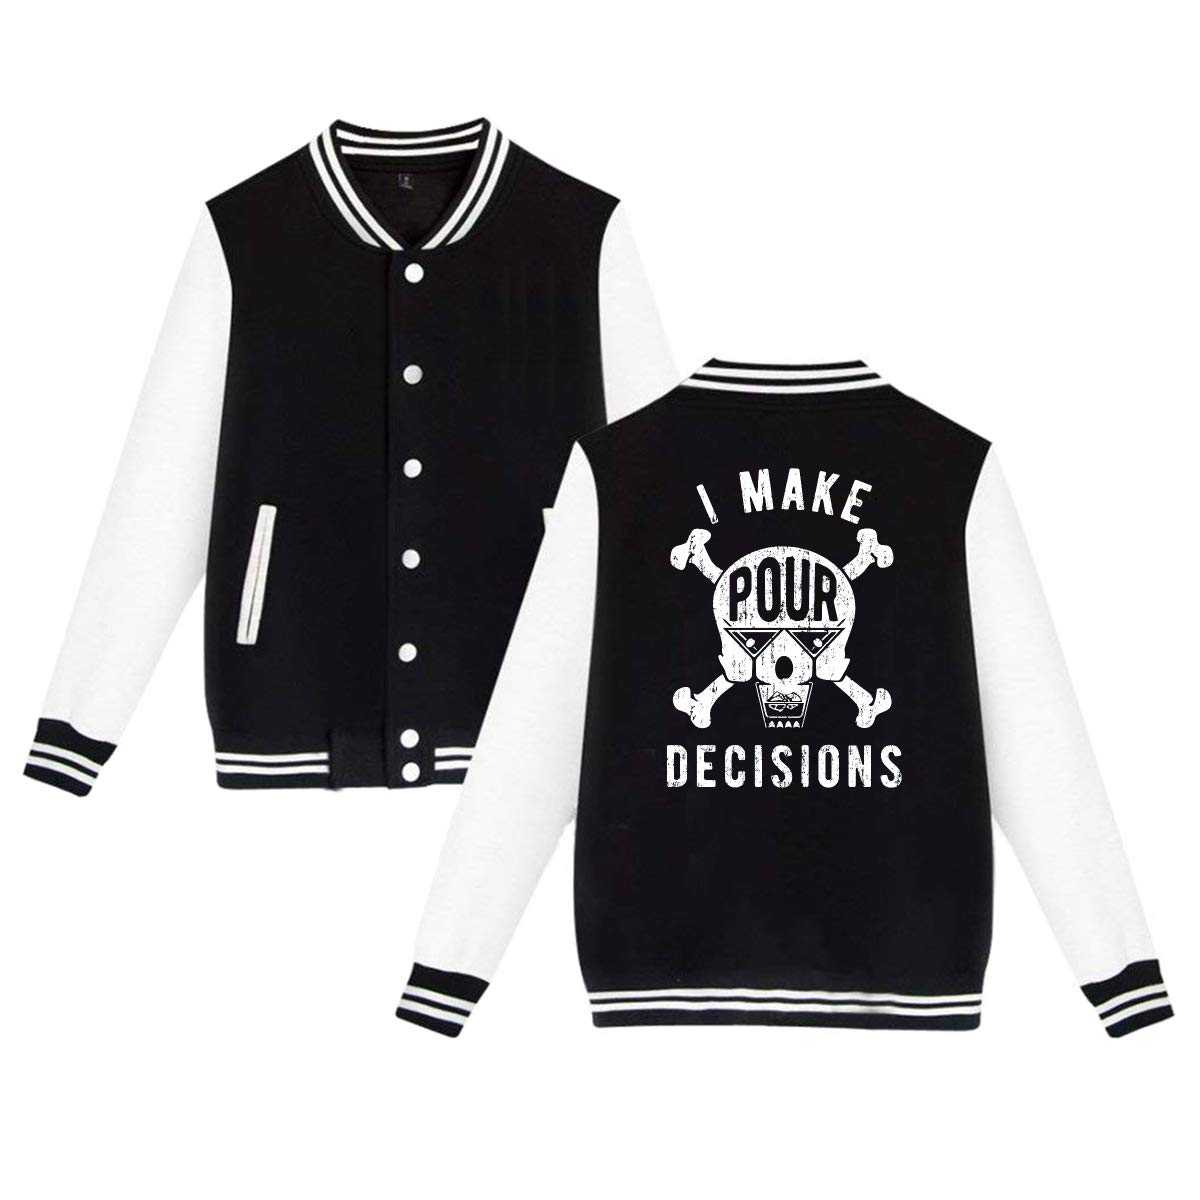 Black Unisex Men's Varsity Baseball Uniform Jacket I Make Pour Decisions Sport Coat Winter Hoodie Velvet